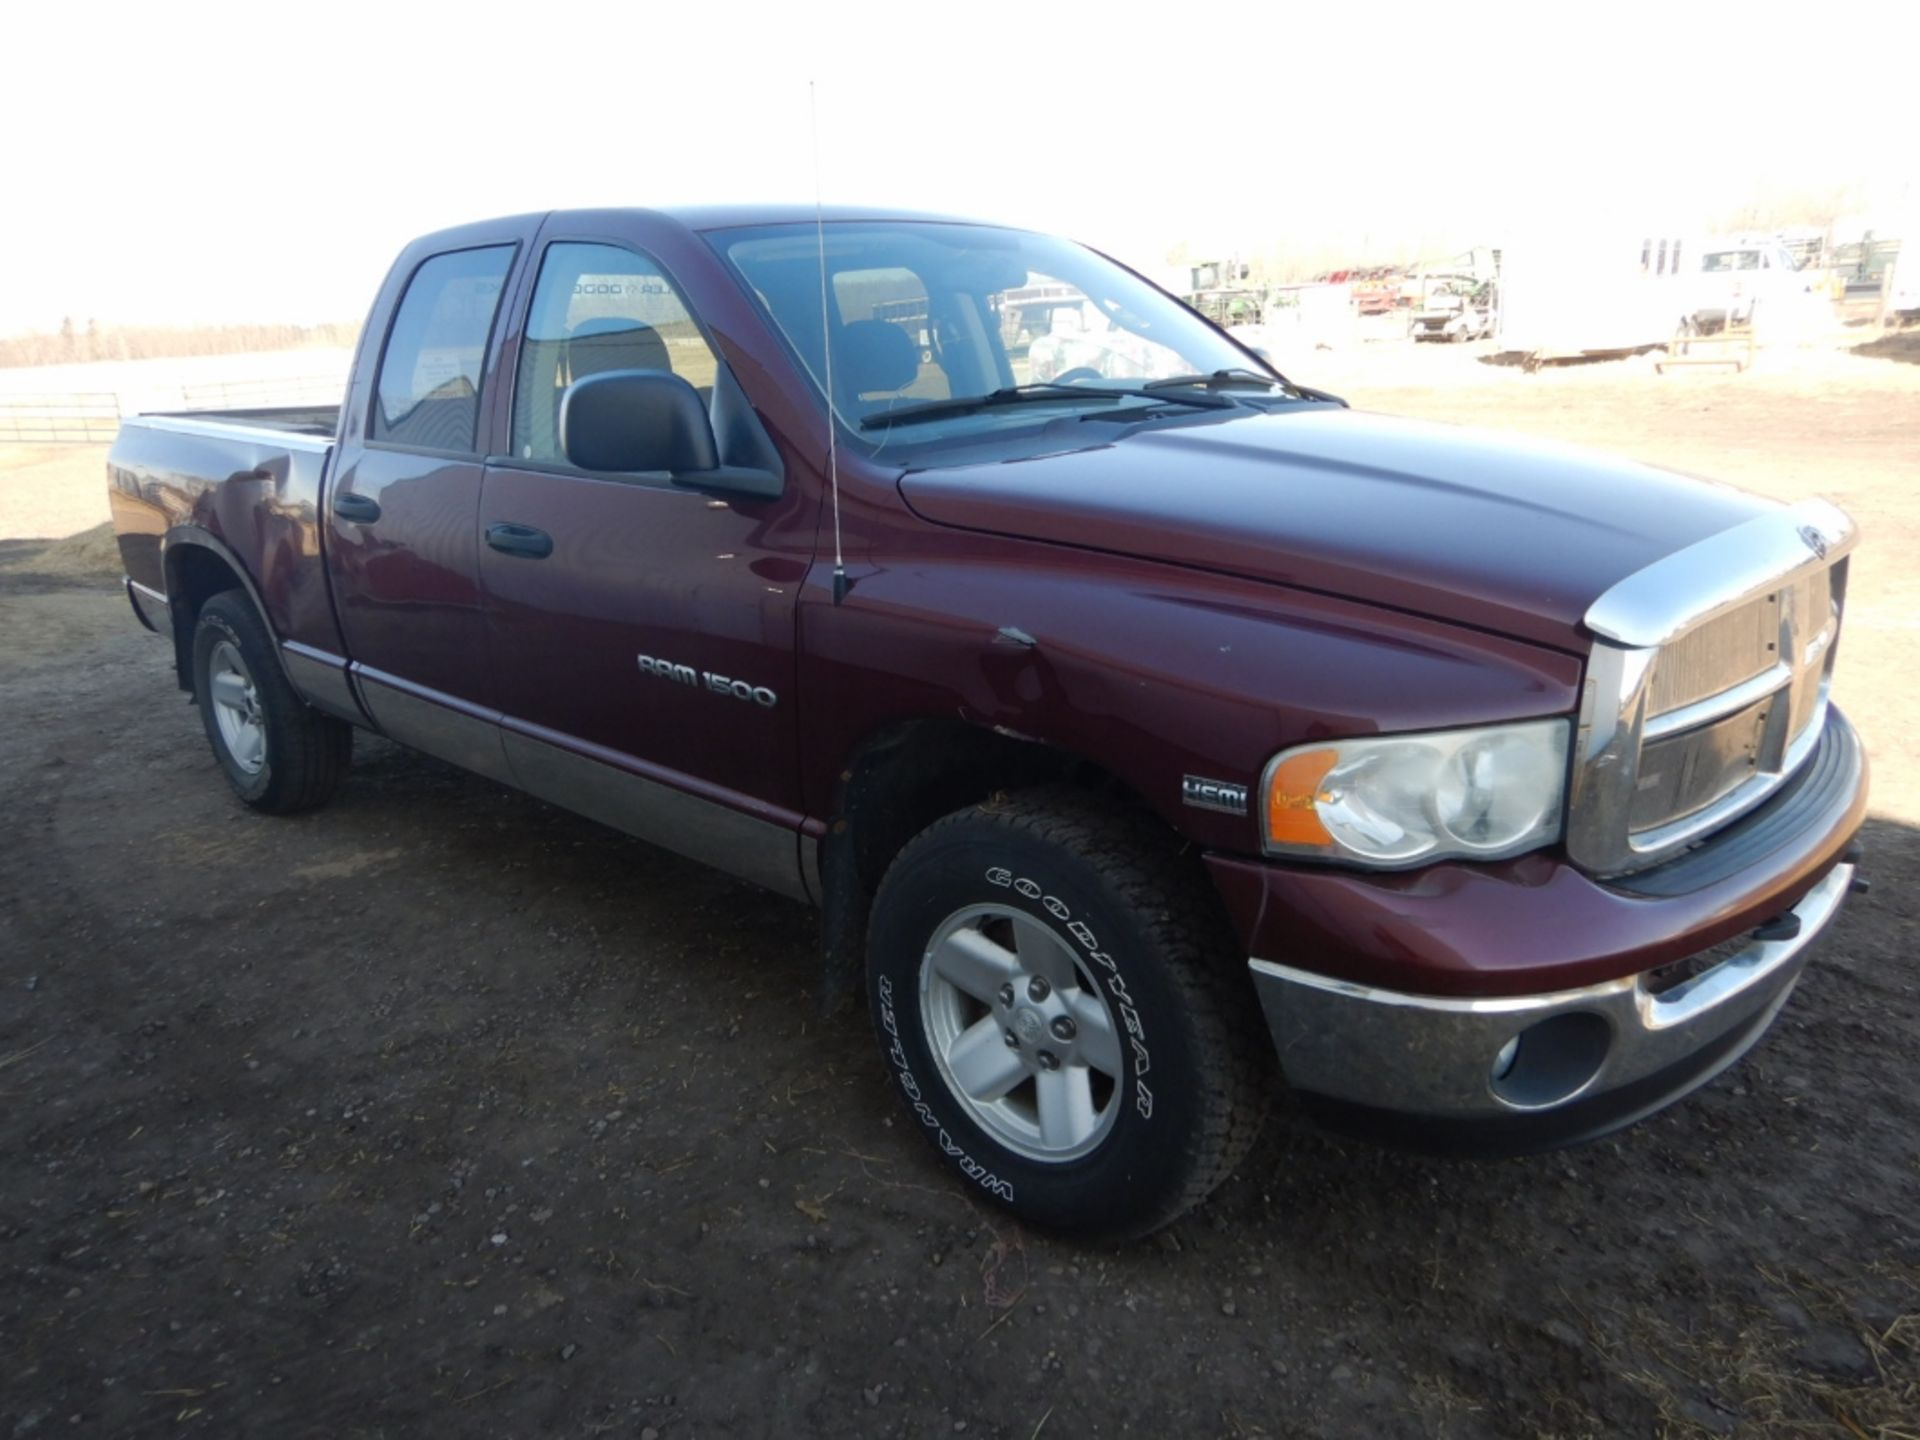 2003 DODGE RAM 1500 PICKUP, GAS, CREW CAB, SHORT BOX, AT, 248,000KM'S SHOWING, S/N - Image 5 of 11